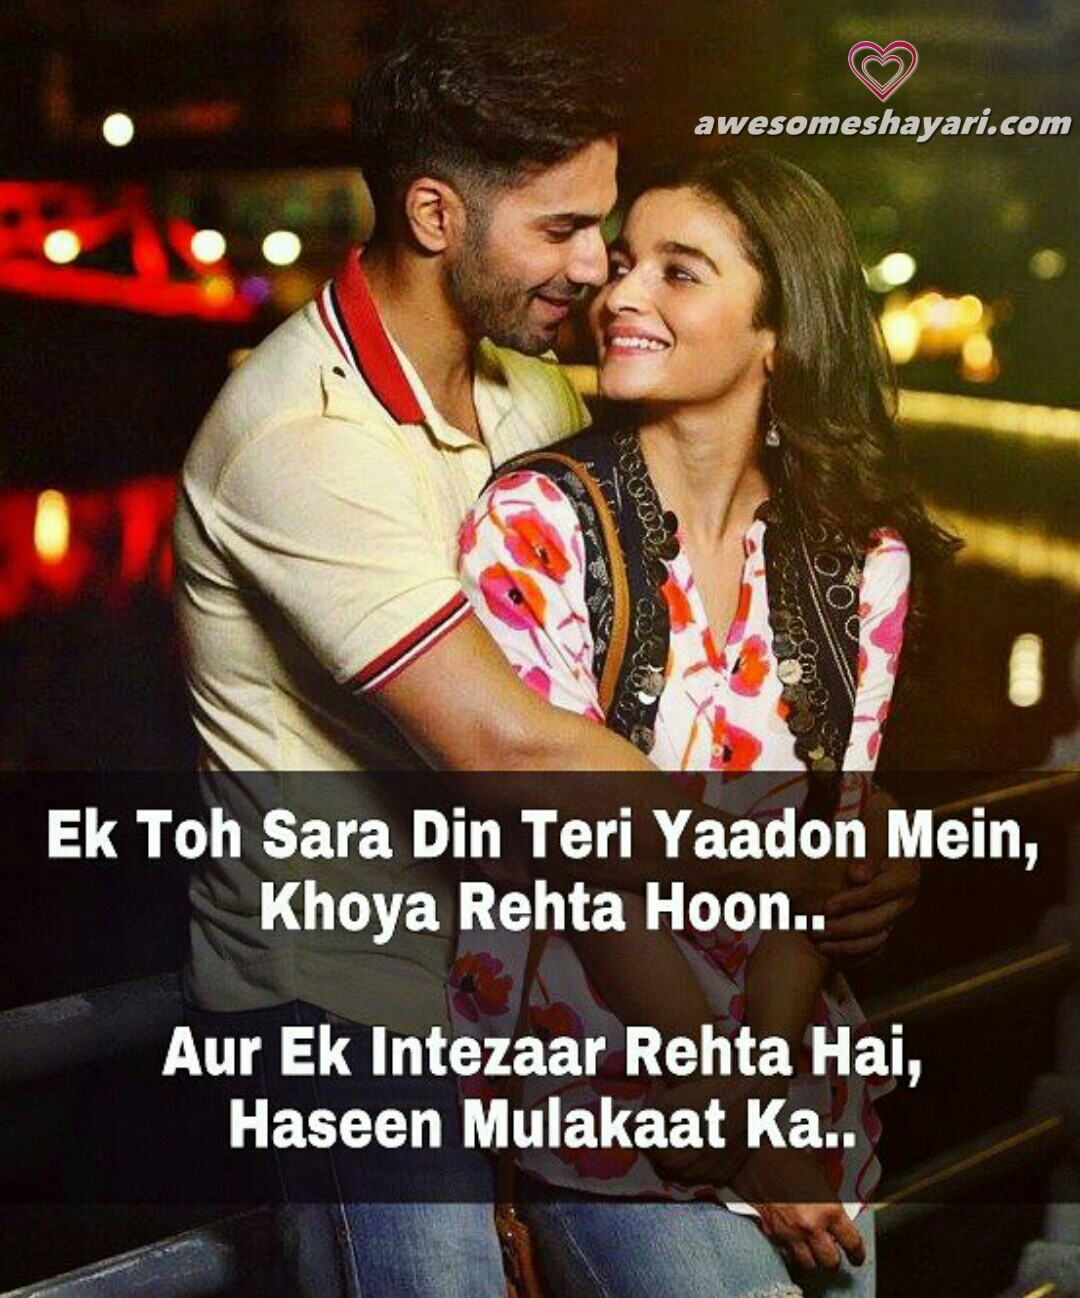 teacher and ek din dil We don't upload dil mera tod ke hasdi ek din tu bhi royegi mp3 song downlode, we just retail information from other sources & hyperlink to them when there is a .